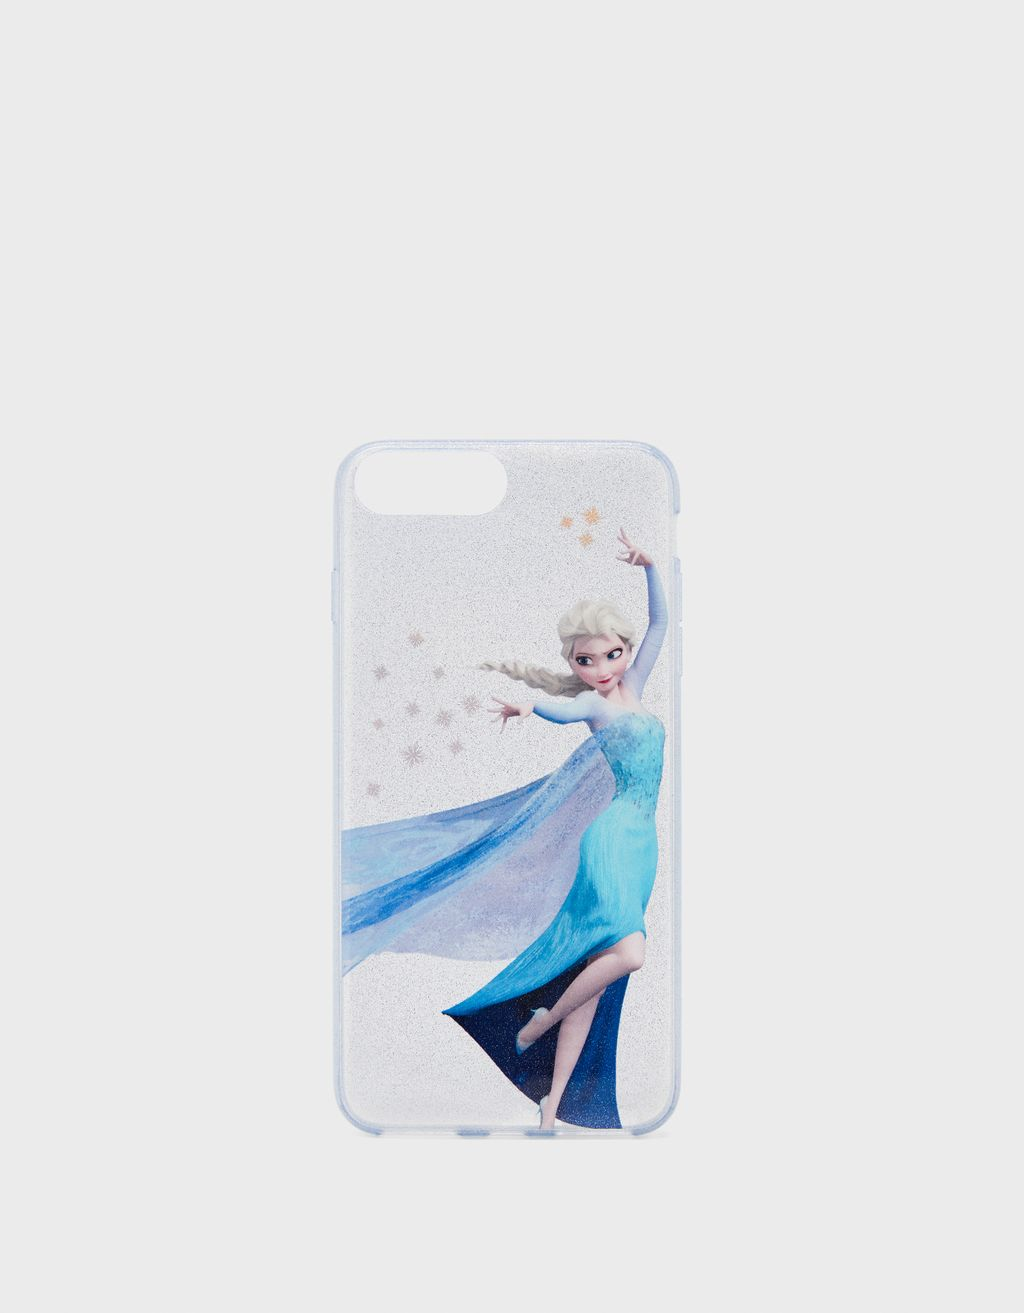 Handyhülle Frozen für iPhone 6 plus / 7 plus / 8 plus